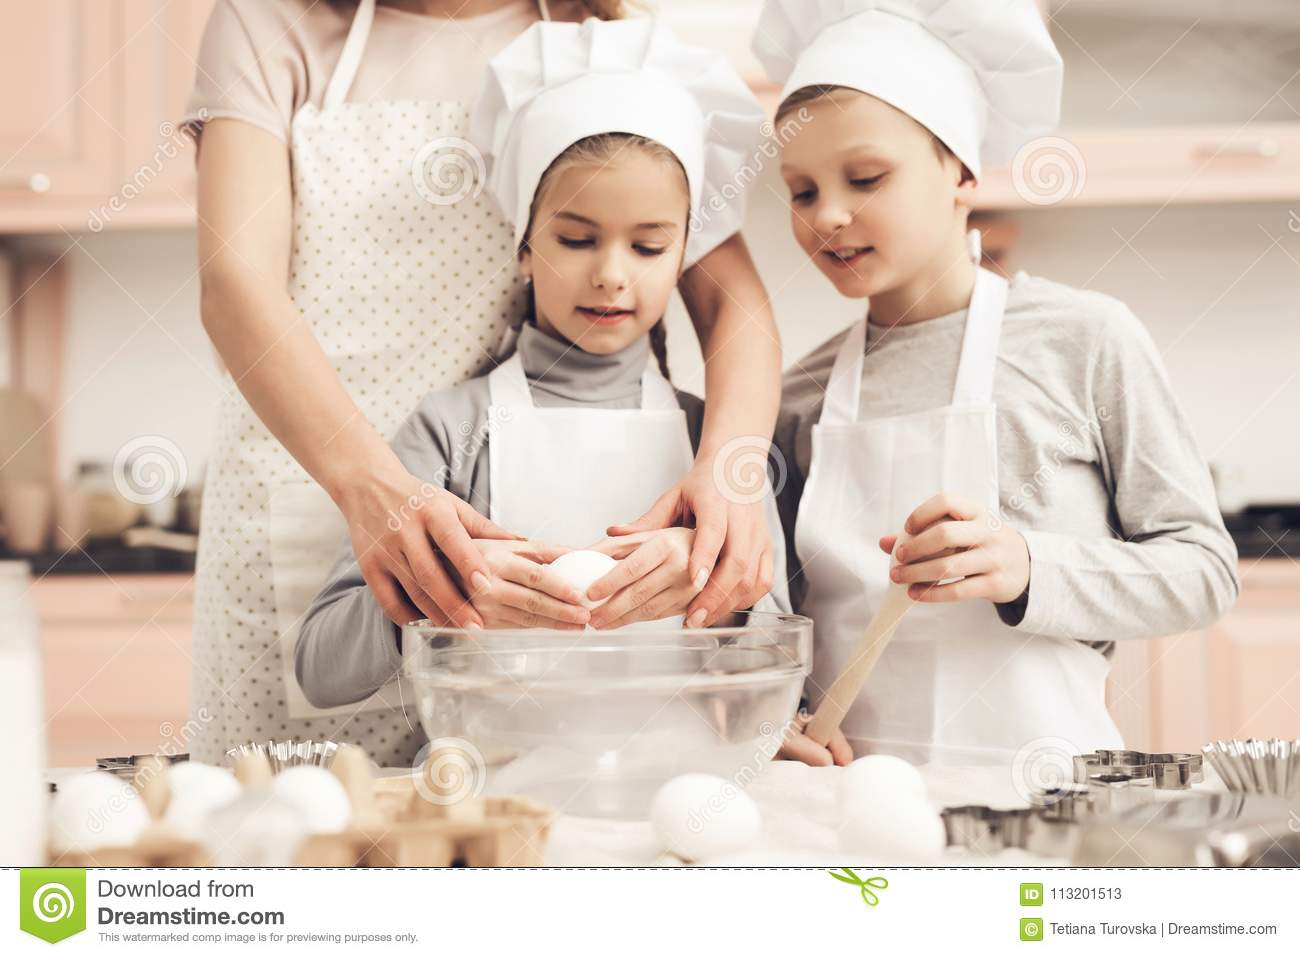 Children with mother in kitchen. Mother is teaching kids how to break eggs.